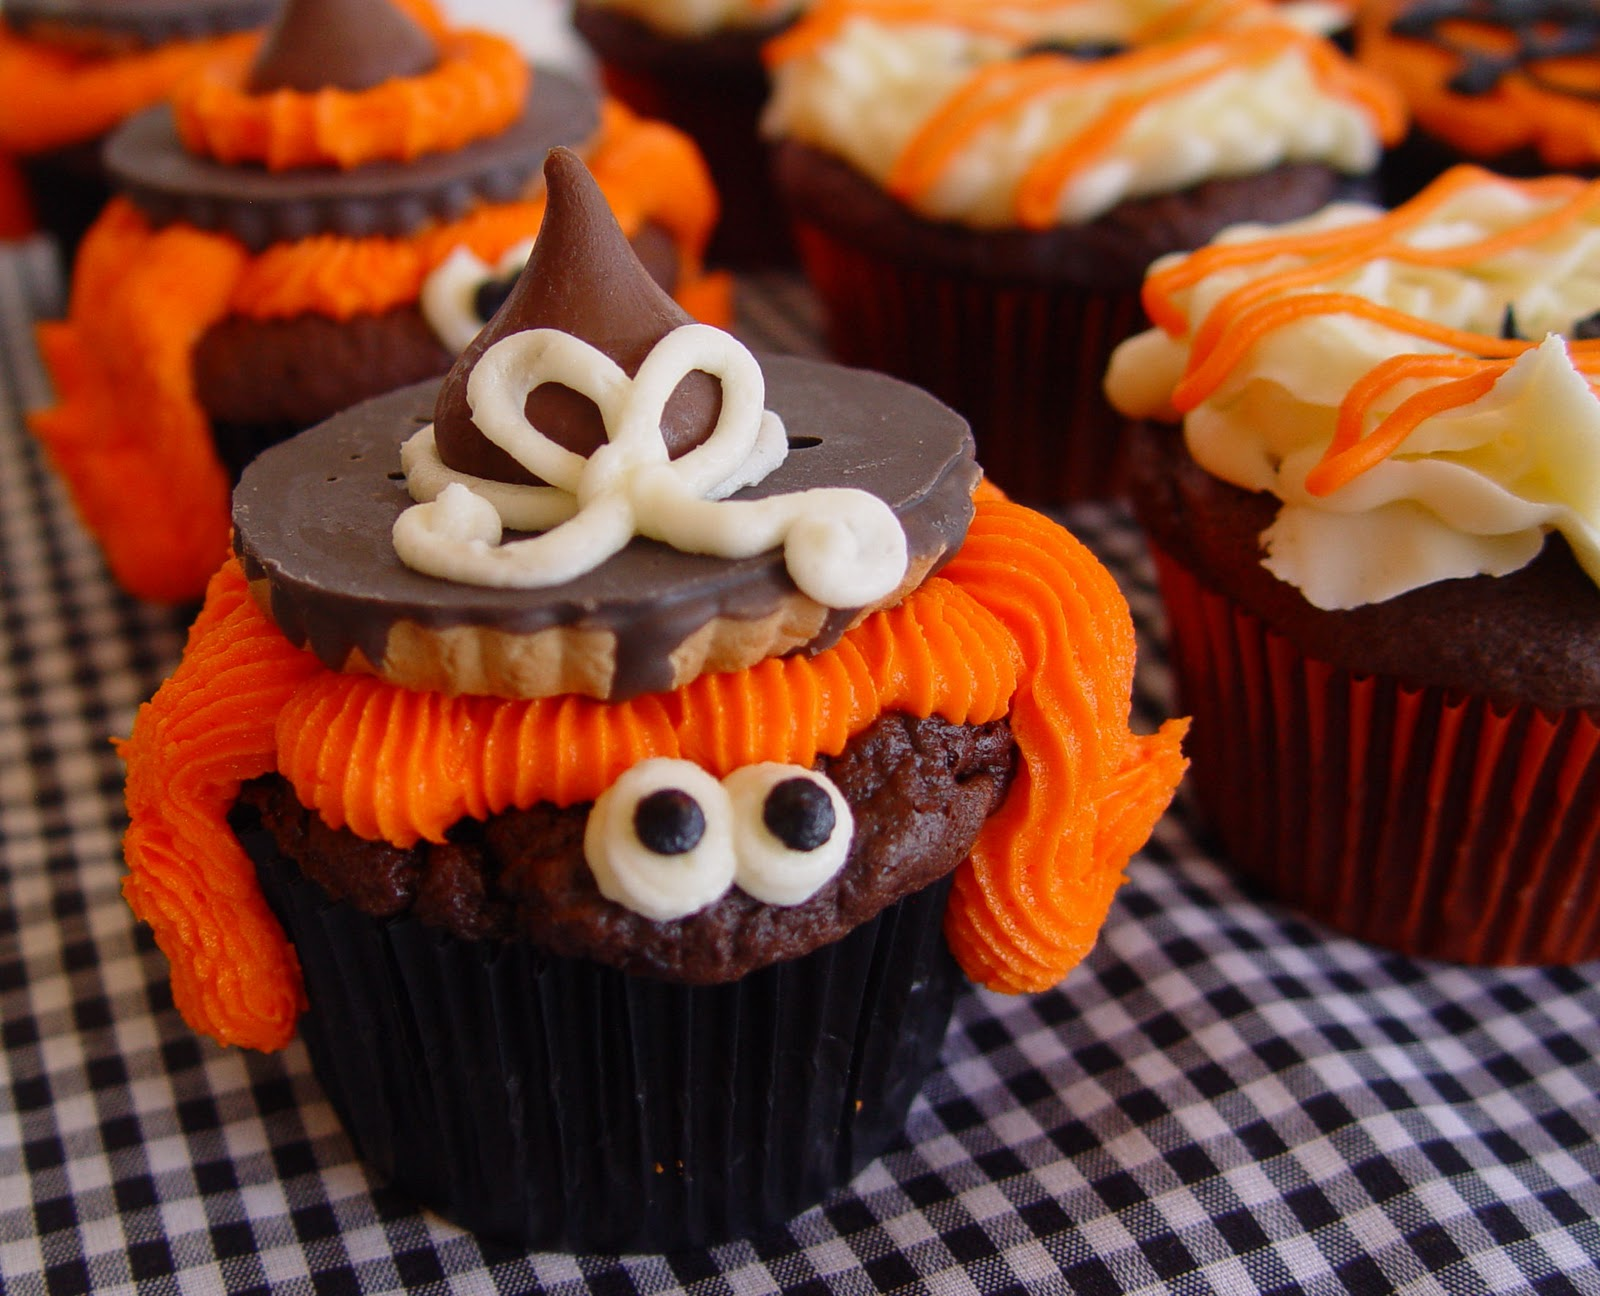 Spook tacular halloween cupcakes - Halloween decorations for cupcakes ...